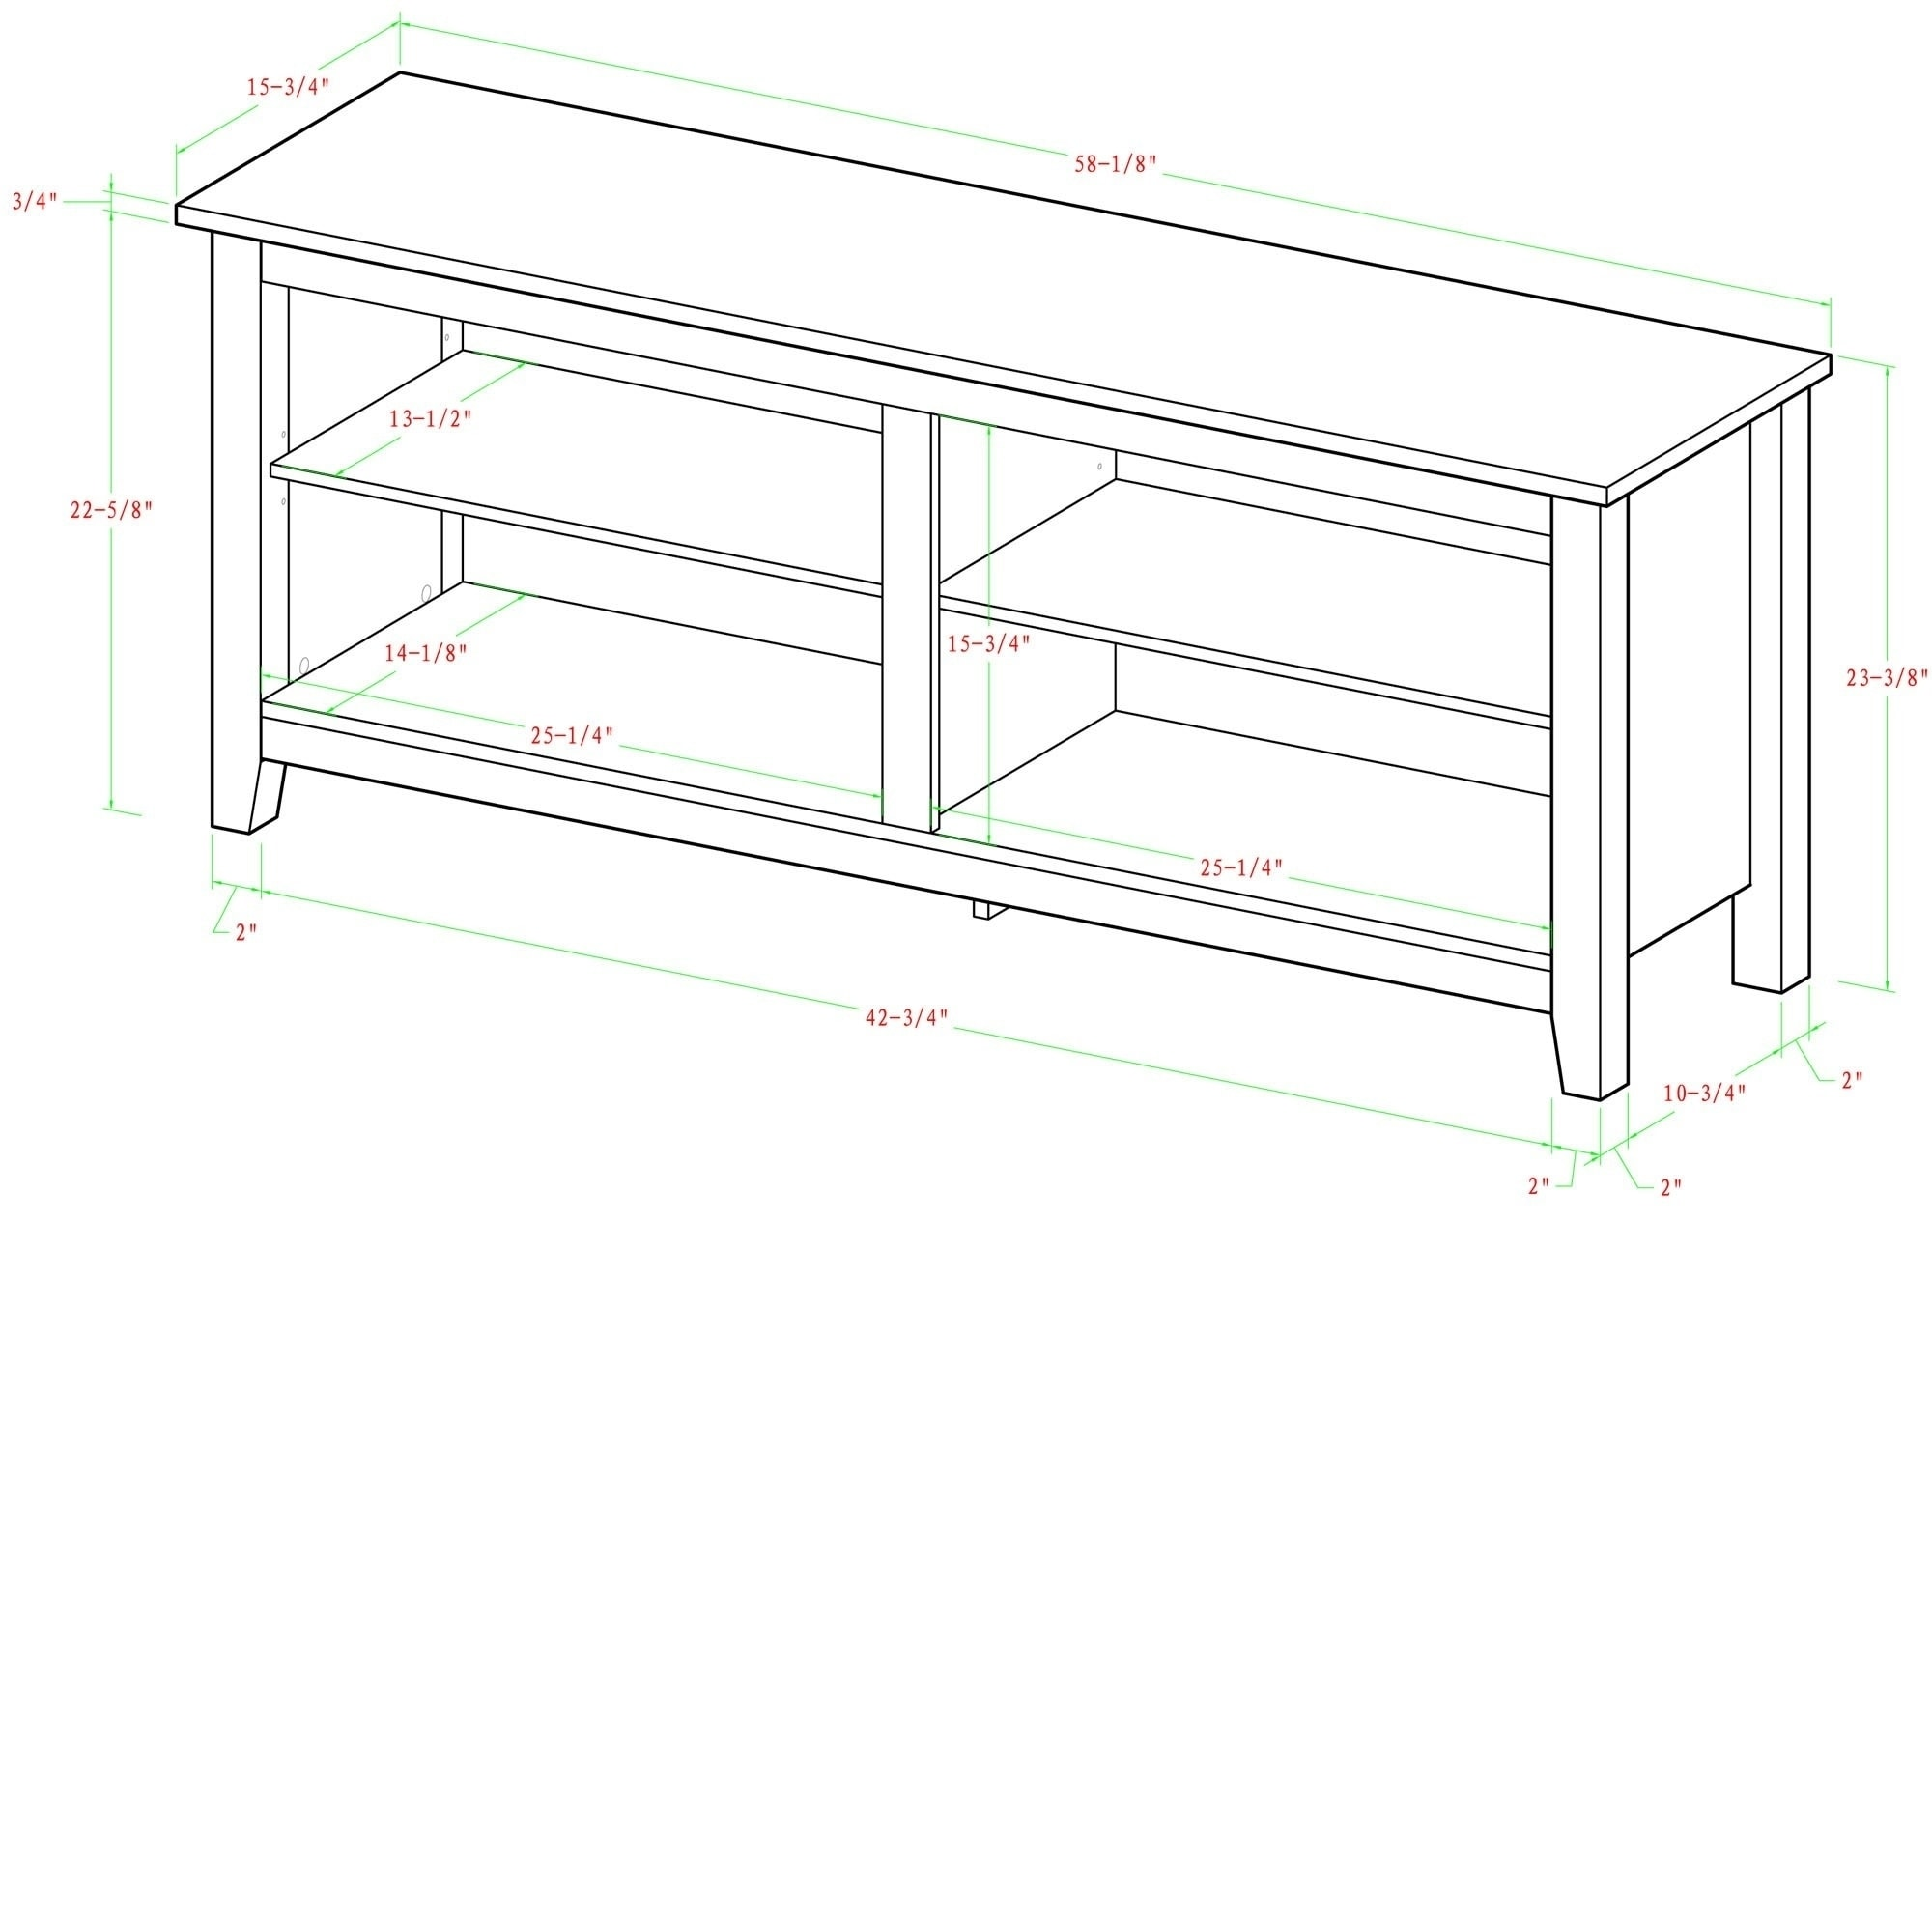 old console tv wiring diagram database Walmart Furniture TV Stands with Mount shop 58 tv stand console espresso 58 x 16 x 24h ships to old rca tv console old console tv